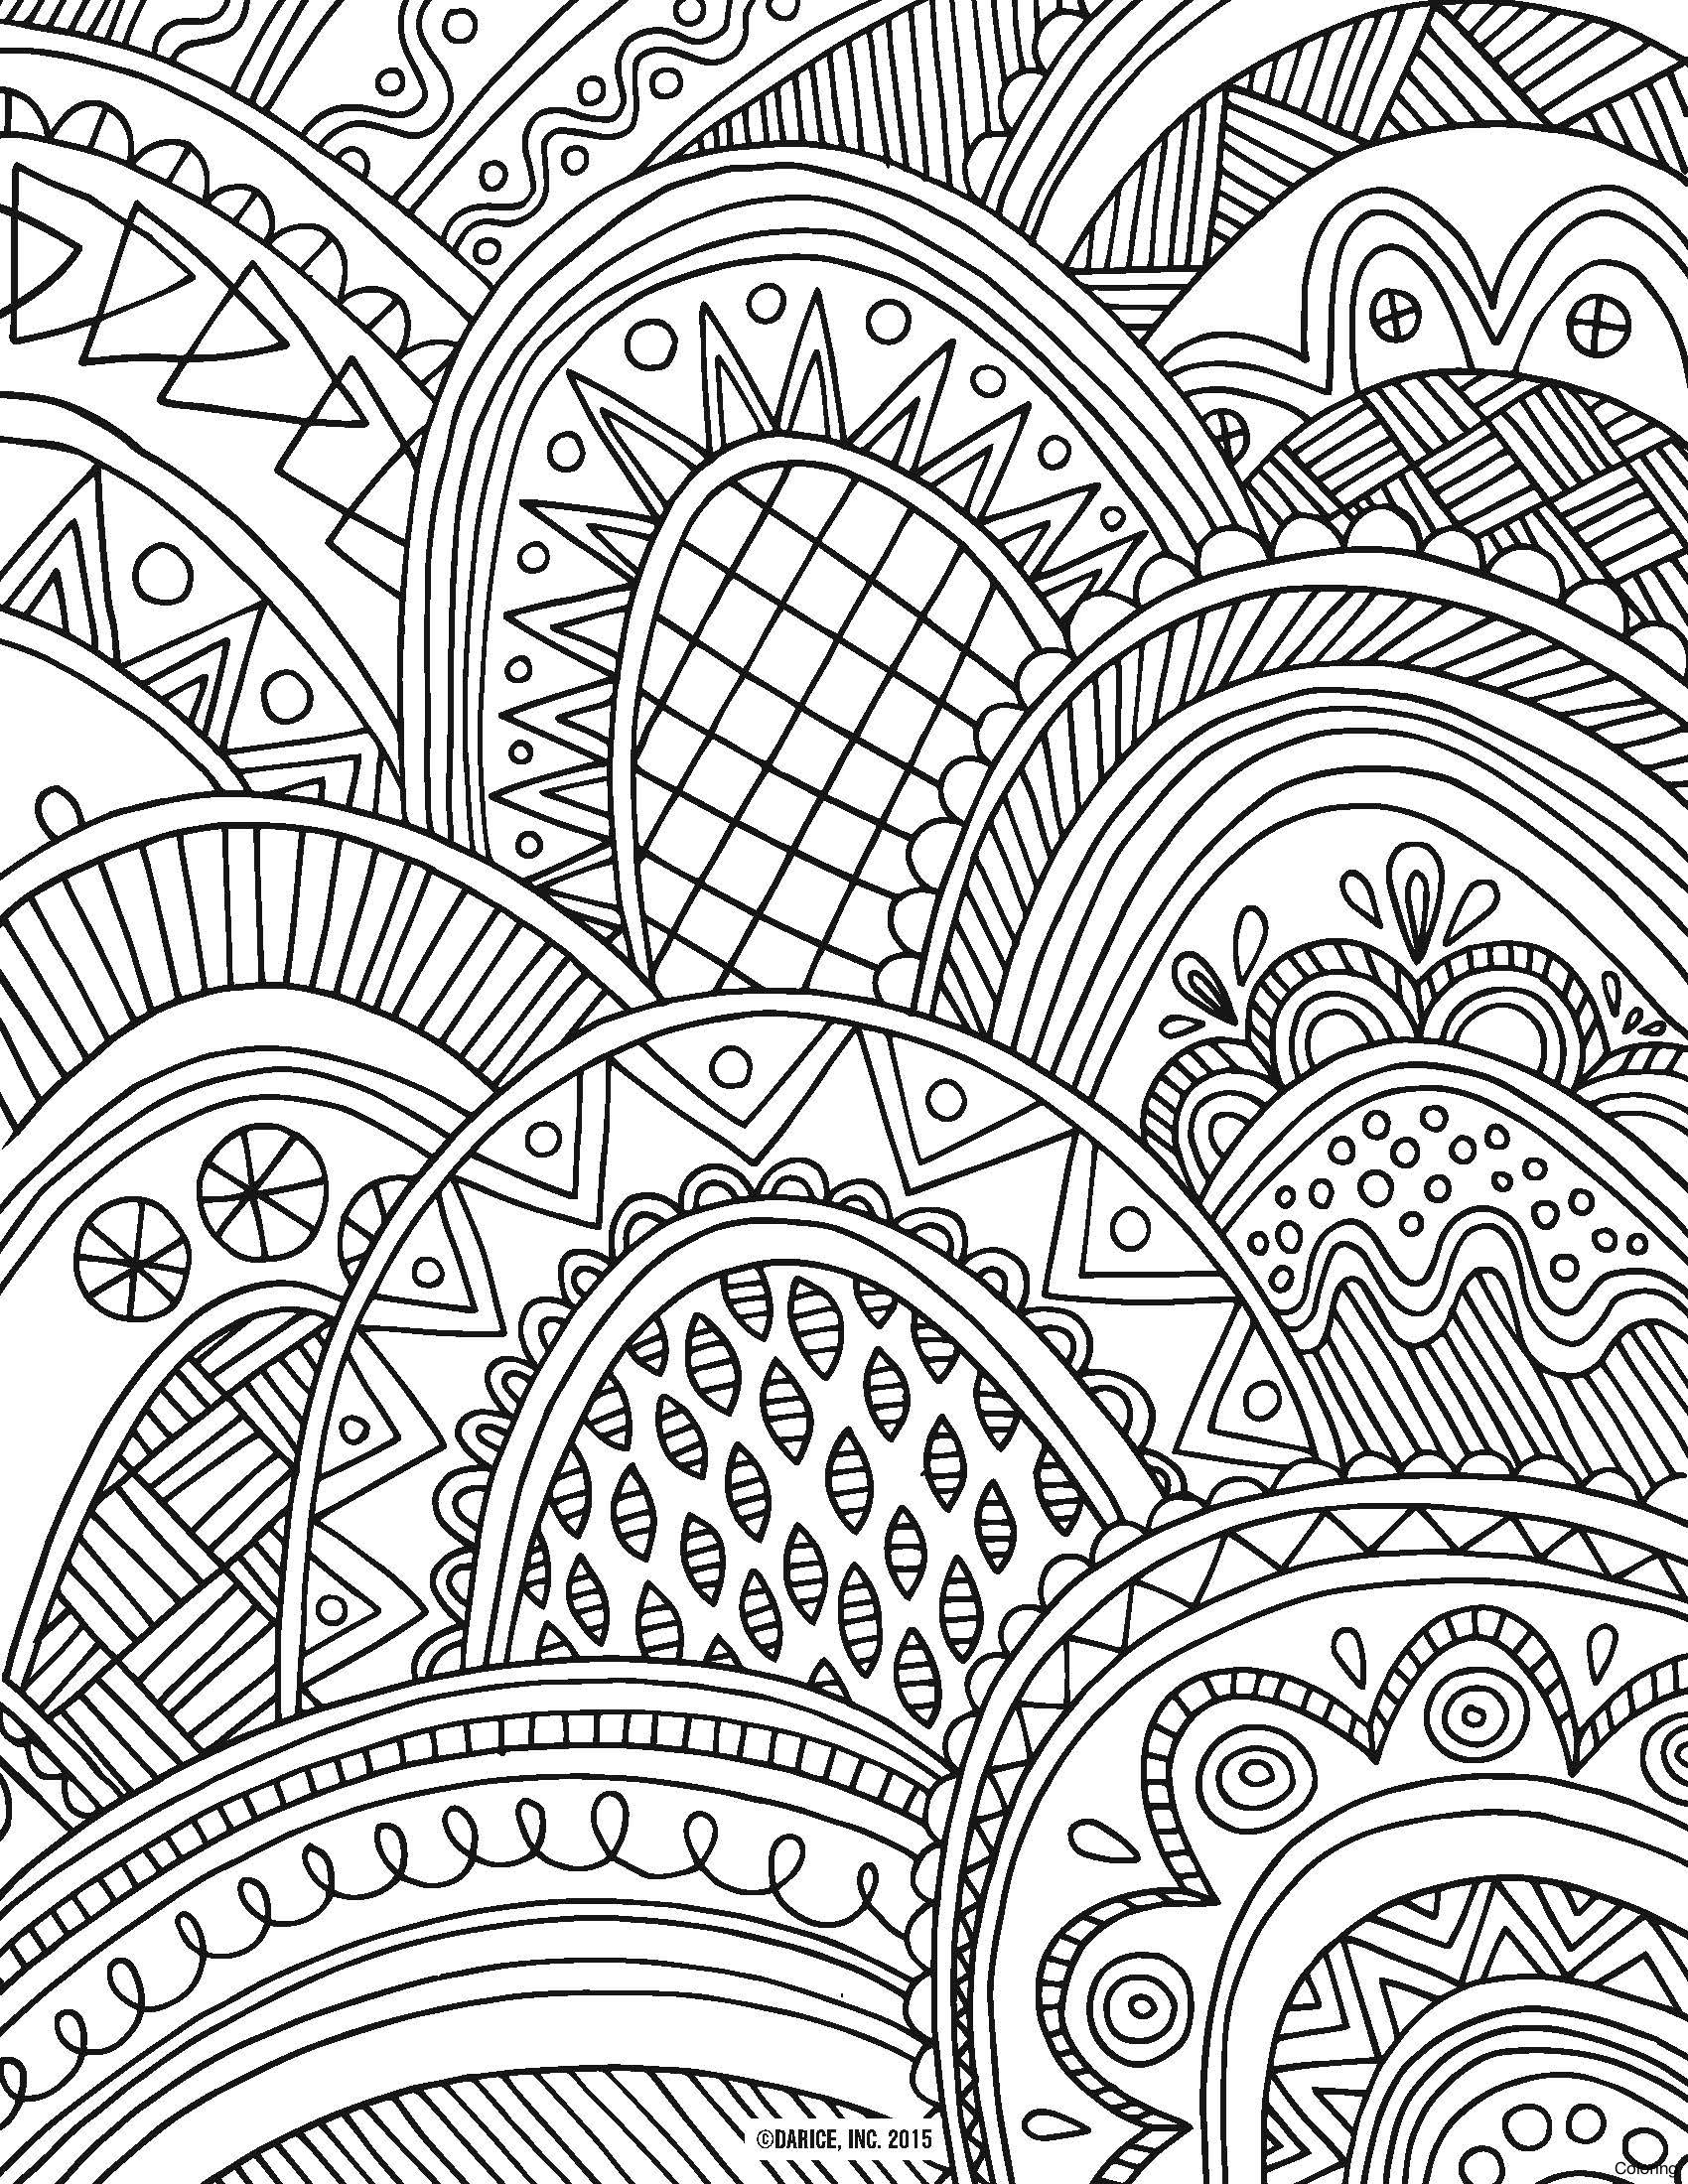 Easter adult coloring pages at getdrawings com free for personal